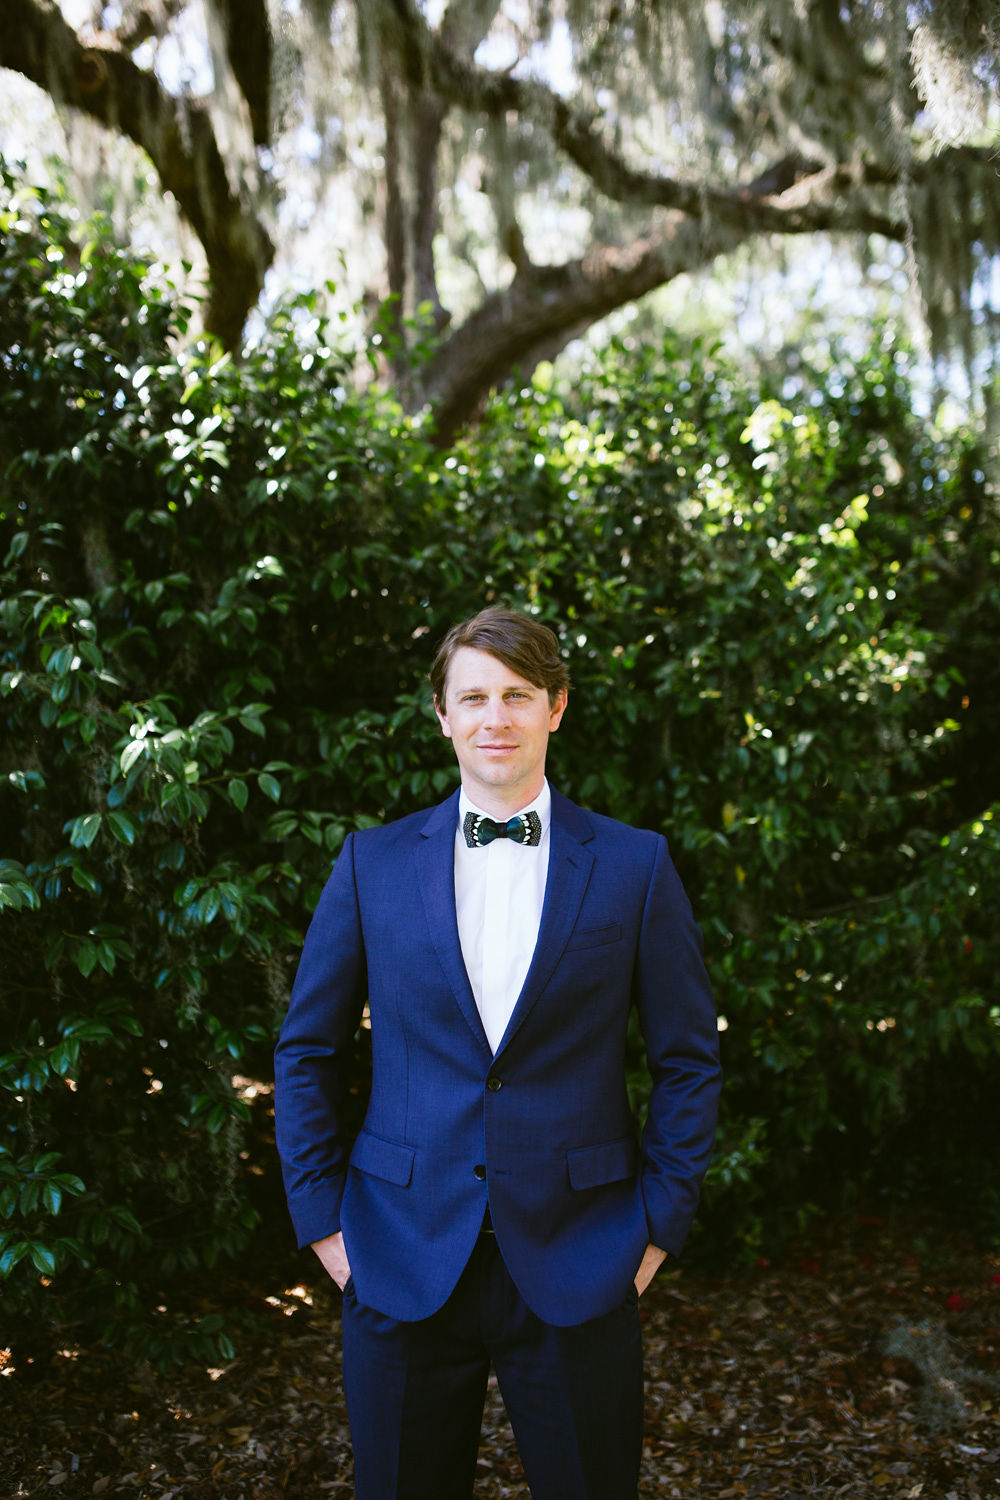 Edisto Island Wedding at Cypress Trees Plantation - Charleston Destination Luxury Wedding Planner - Scarlet Plan & Design, navy blue groom's tuxedo suit brackish bowties